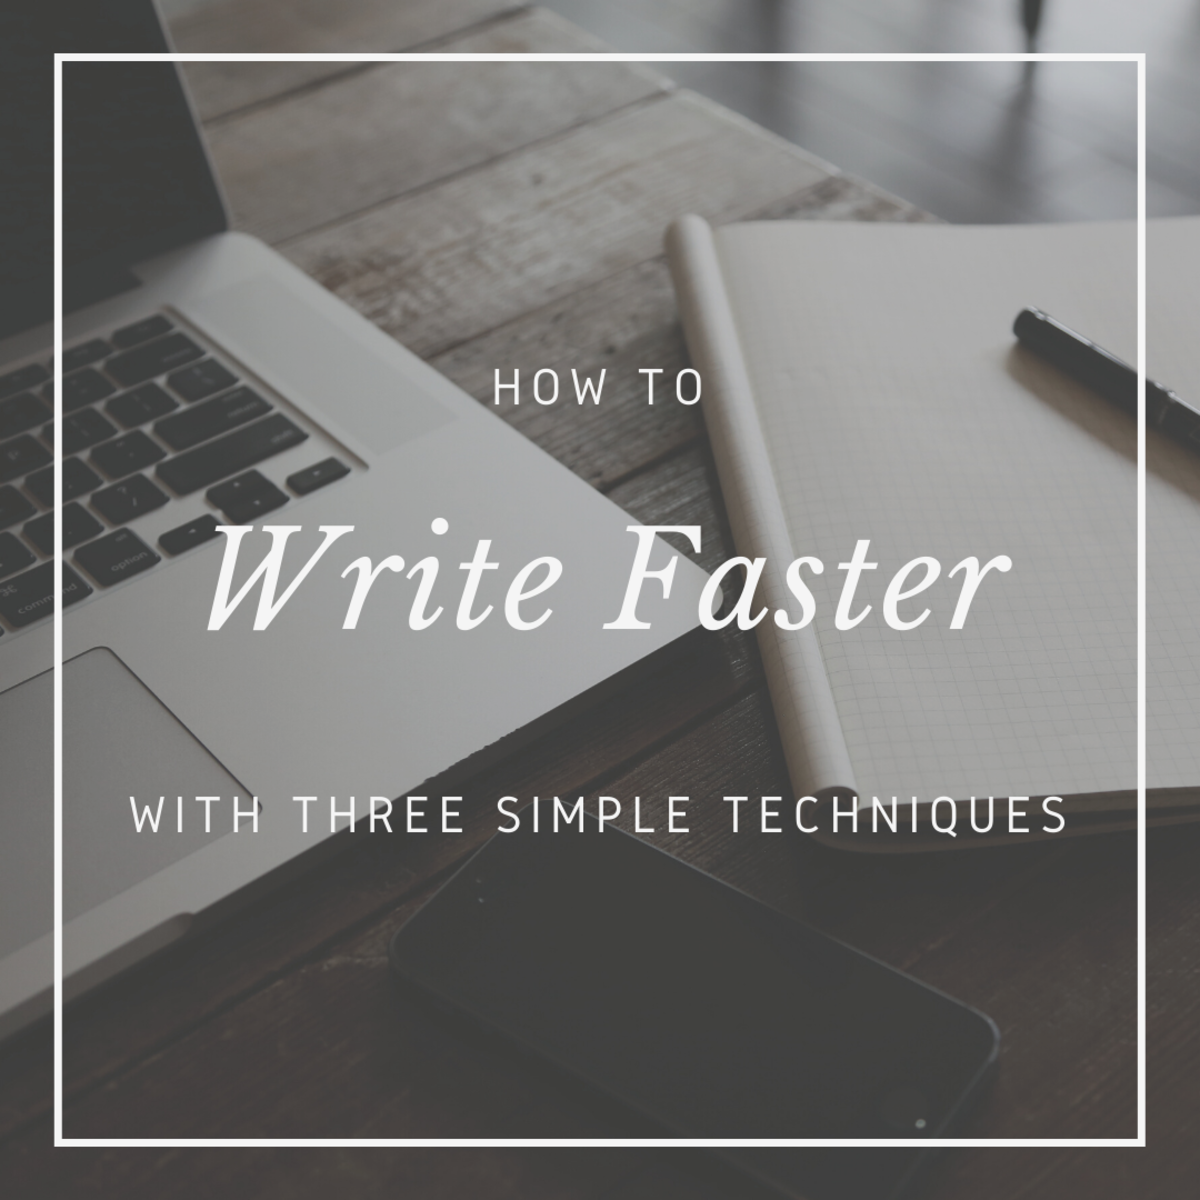 Write faster with these three techniques!